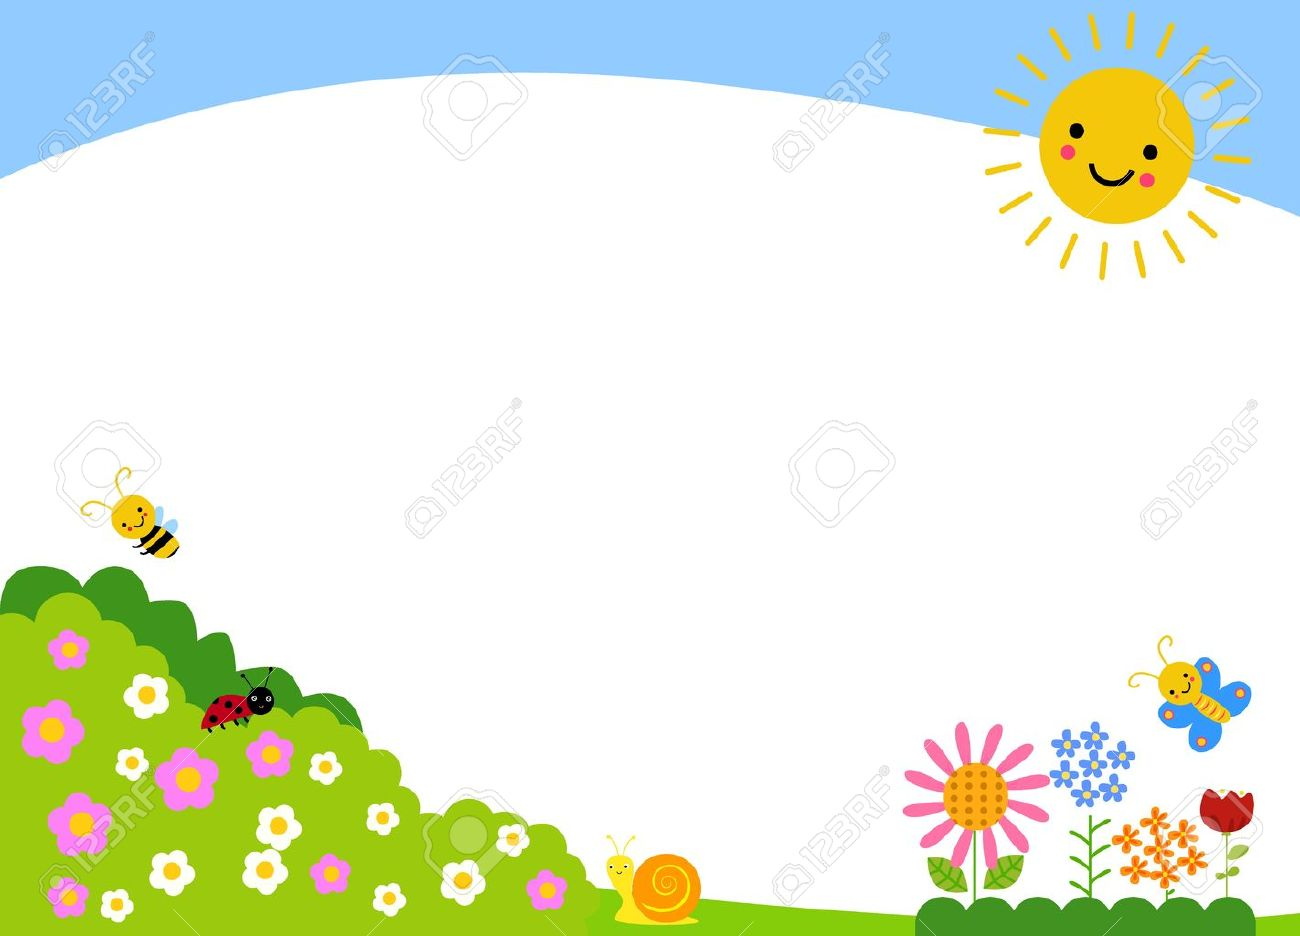 3,140 Bee Garden Stock Vector Illustration And Royalty Free Bee.